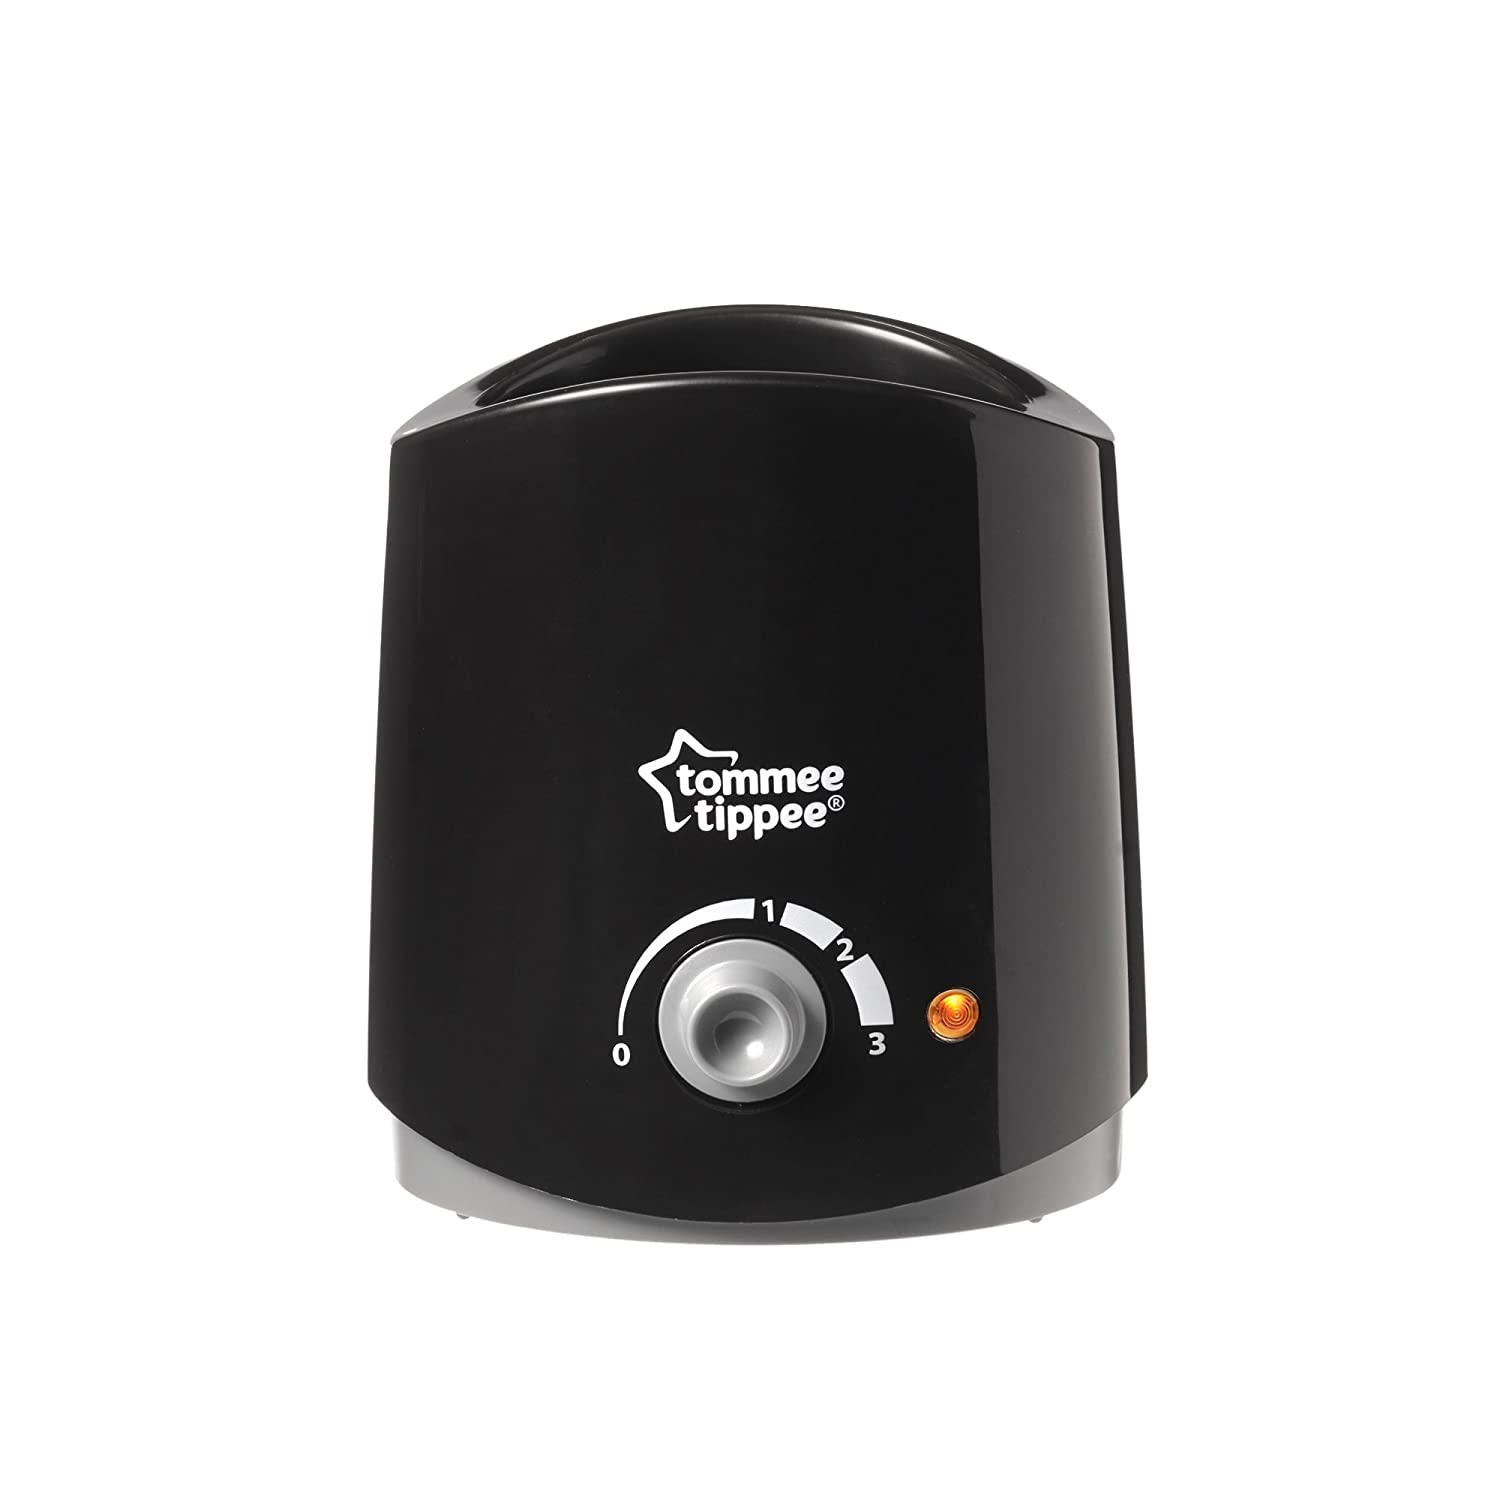 Tommee Tippee Closer to Nature Electric Bottle and Food Warmer, Black 522148